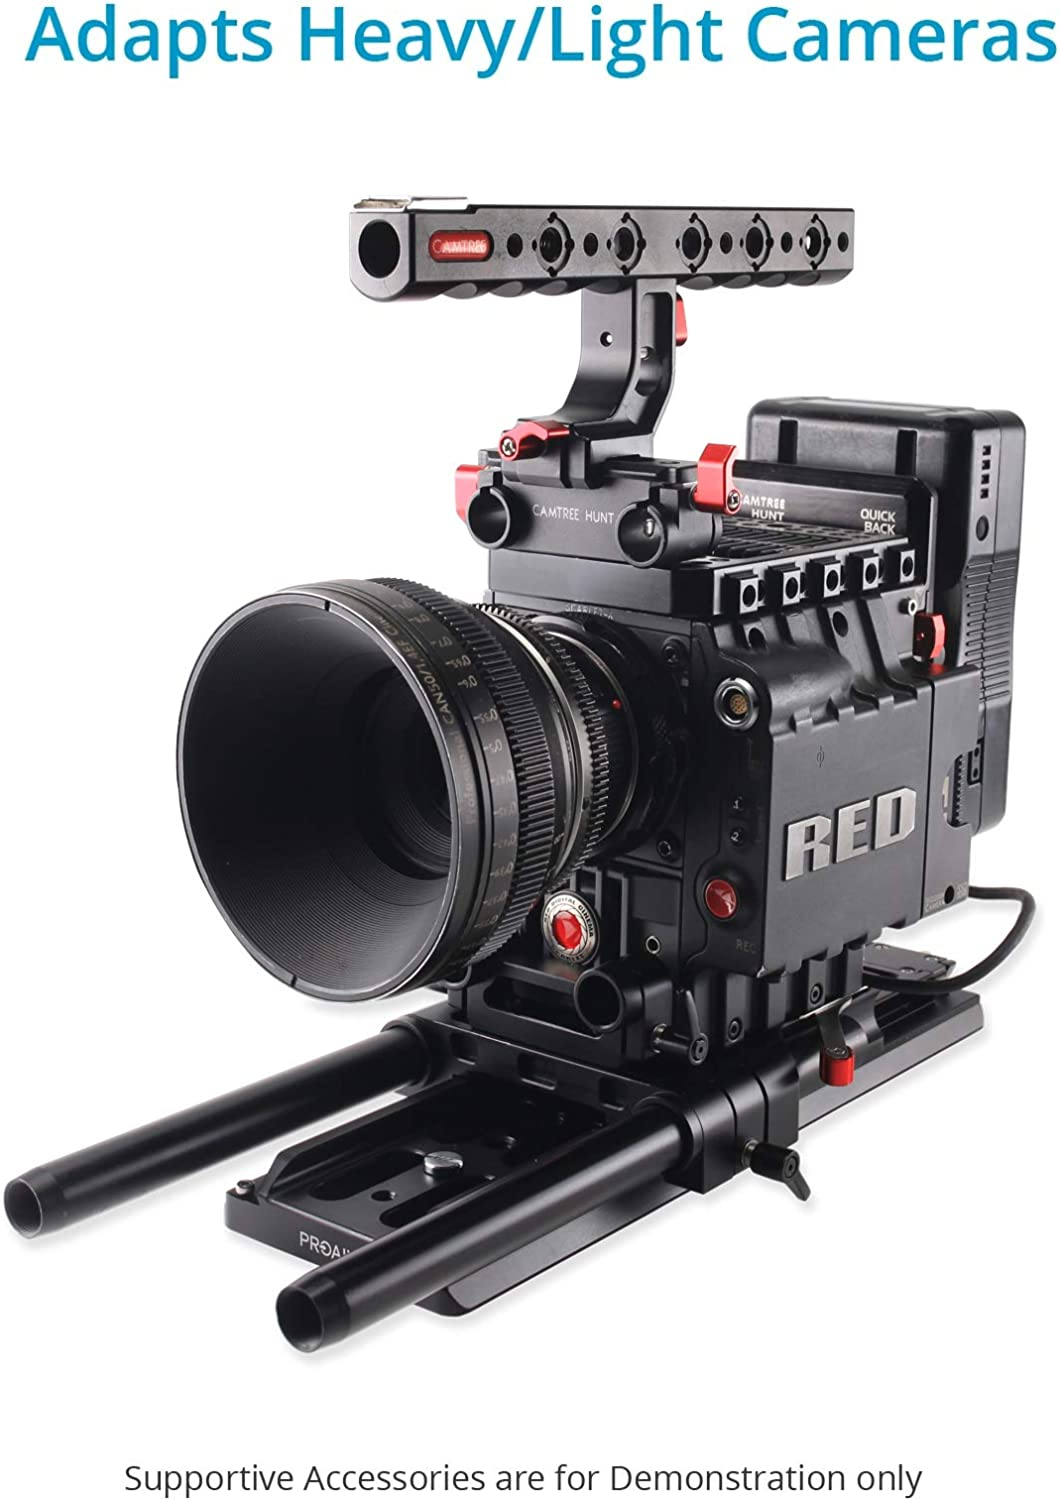 PROAIM 15mm Quick Release Camera Base Plate with Dovetail CNC Aluminum Made Baseplate with ARRI Standard Dovetail Tripod Plate for DSLR Video Camcorder Sony Nikon Canon RED BMCC Camera P-BPDP-15